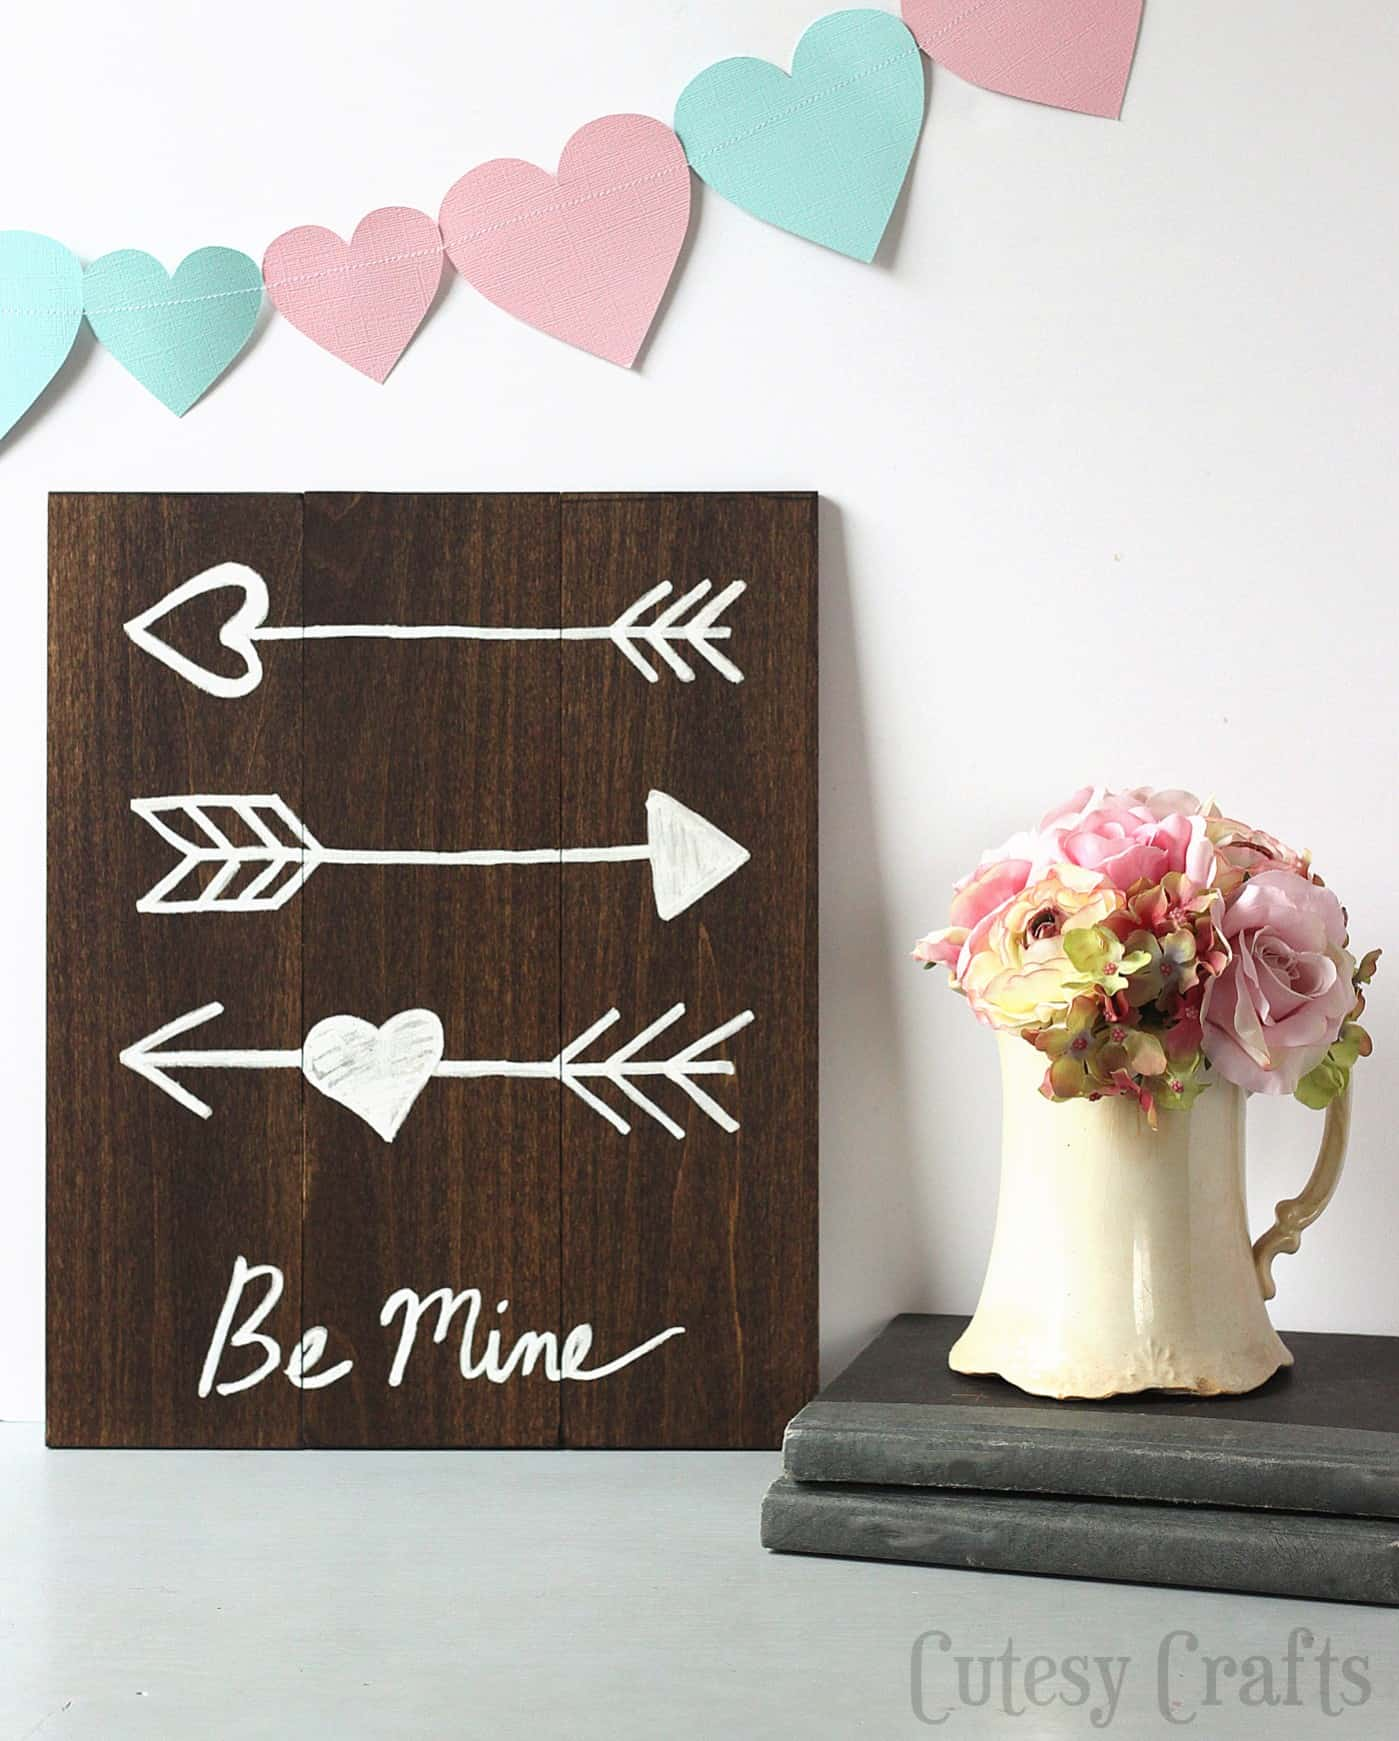 This DIY Valentine's Day arrow art is easy for anyone to make - no nails required, and you can grab a free printable to help you. So cute!